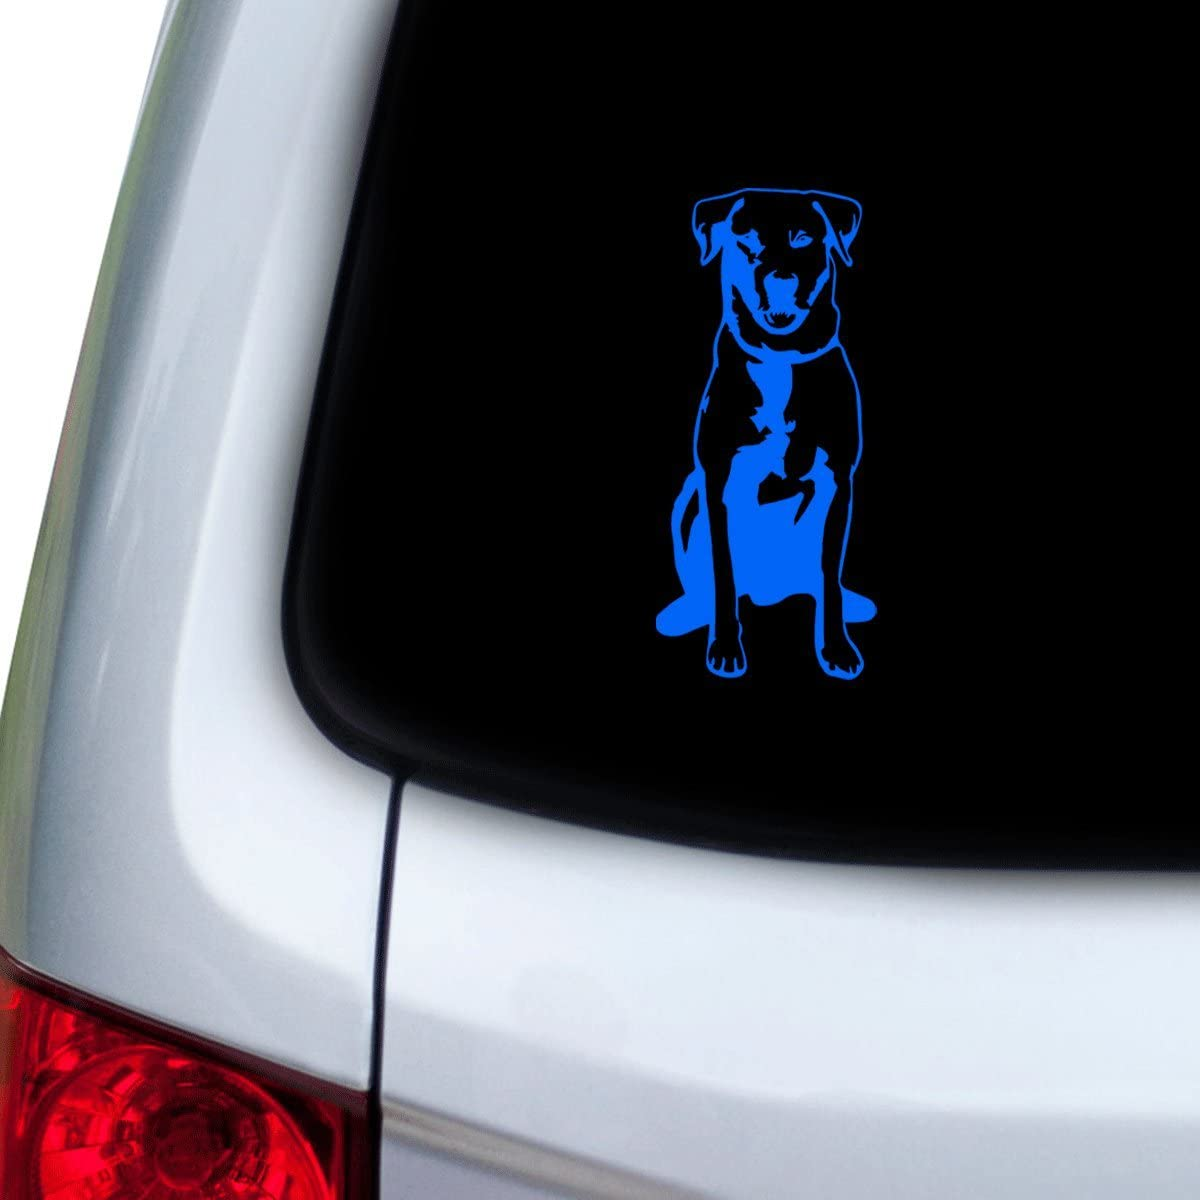 White Doors Hoods StickAny Car and Auto Decal Series Labrador Style 5 Sticker for Windows